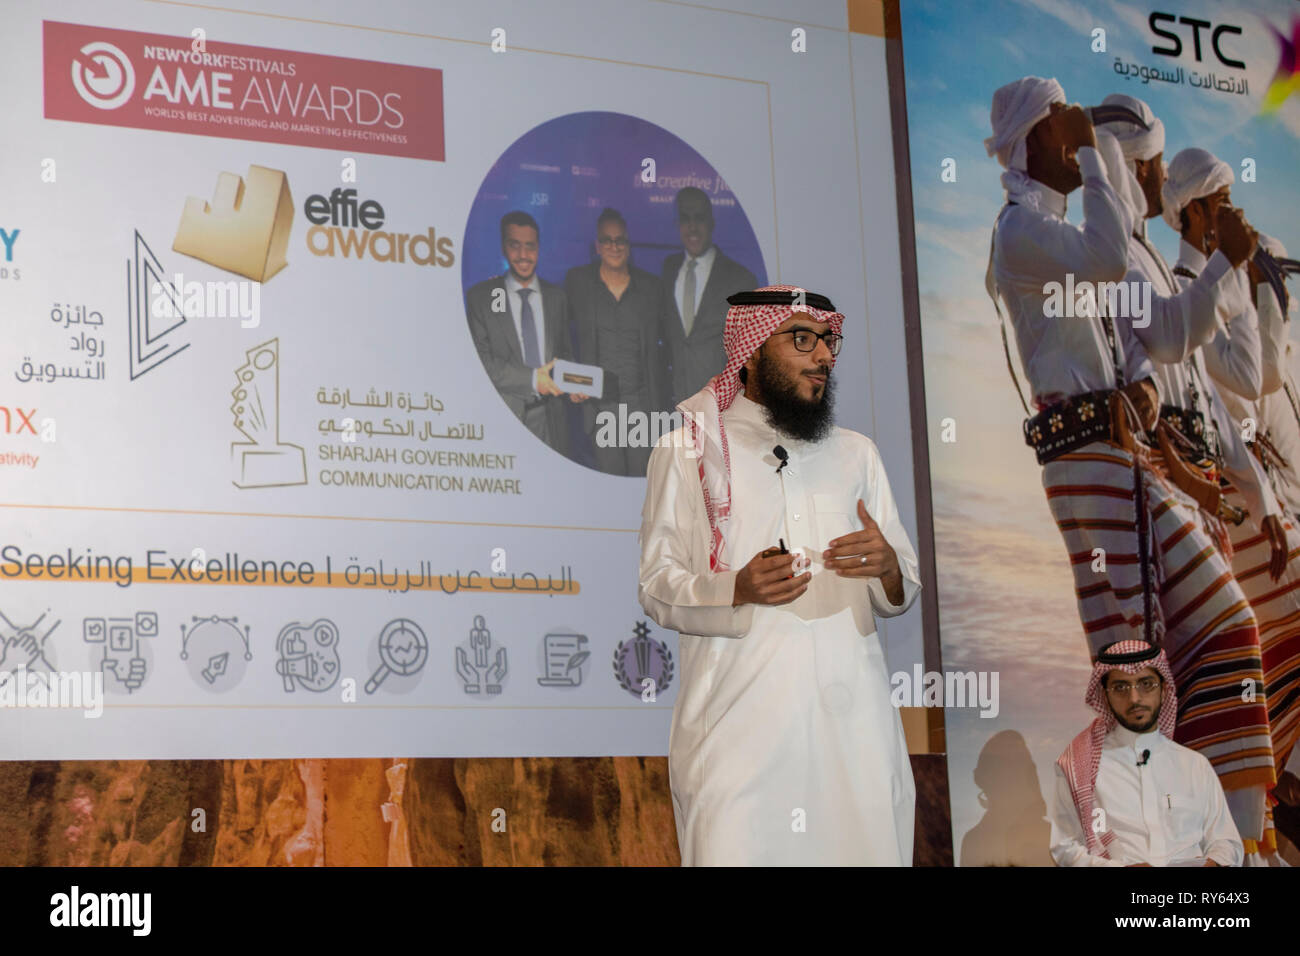 Dubai, United Arab Emirates. 12th Mar, 2019. Suliman Alrumaikhan, Content Strategist, Ministry Of Health KSA at Dubai Lynx - International Festival of Creativity, Credit: ifnm/Alamy Live News - Stock Image